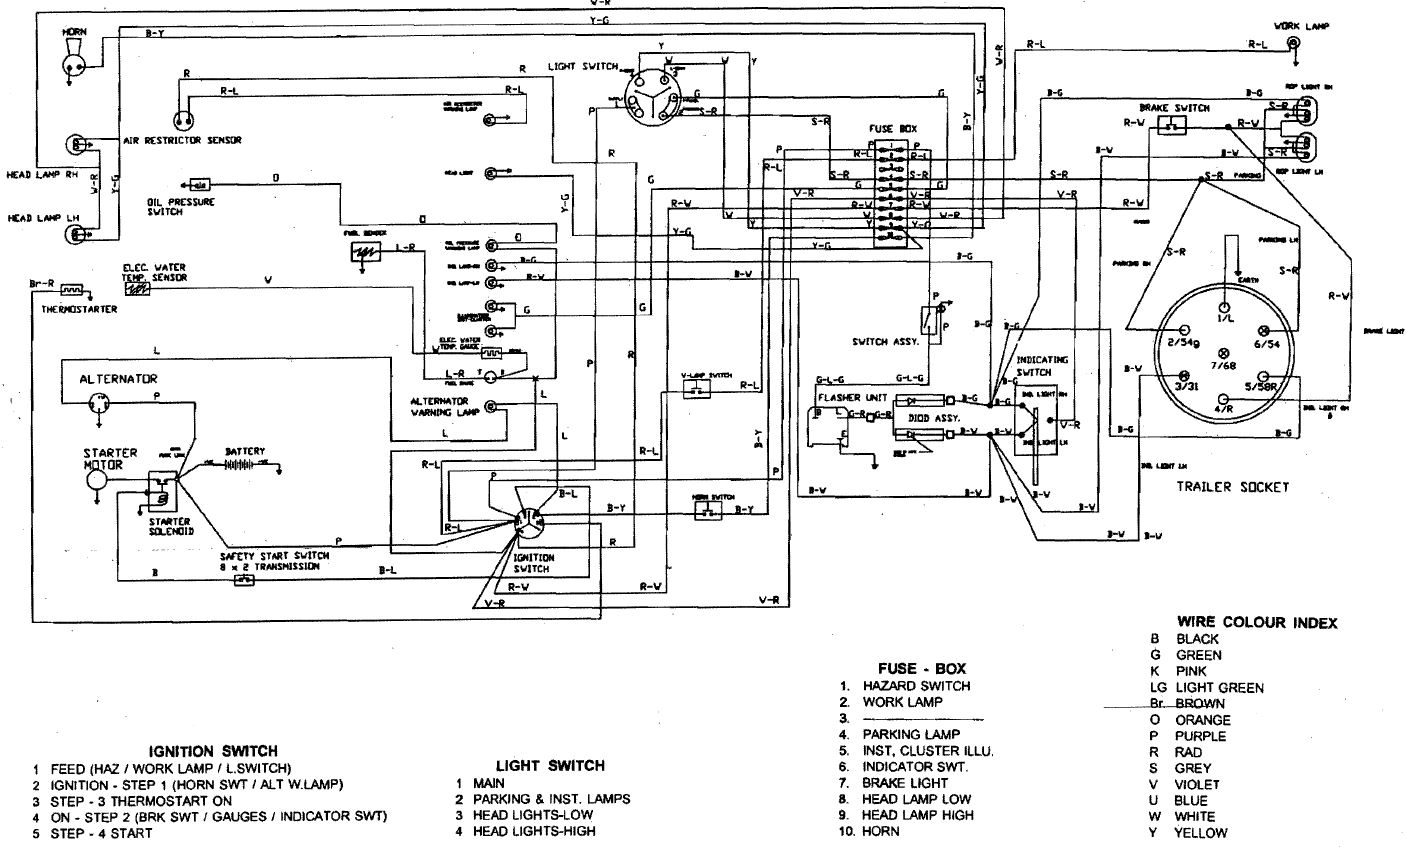 Ignition Switch Wiring Diagram Light